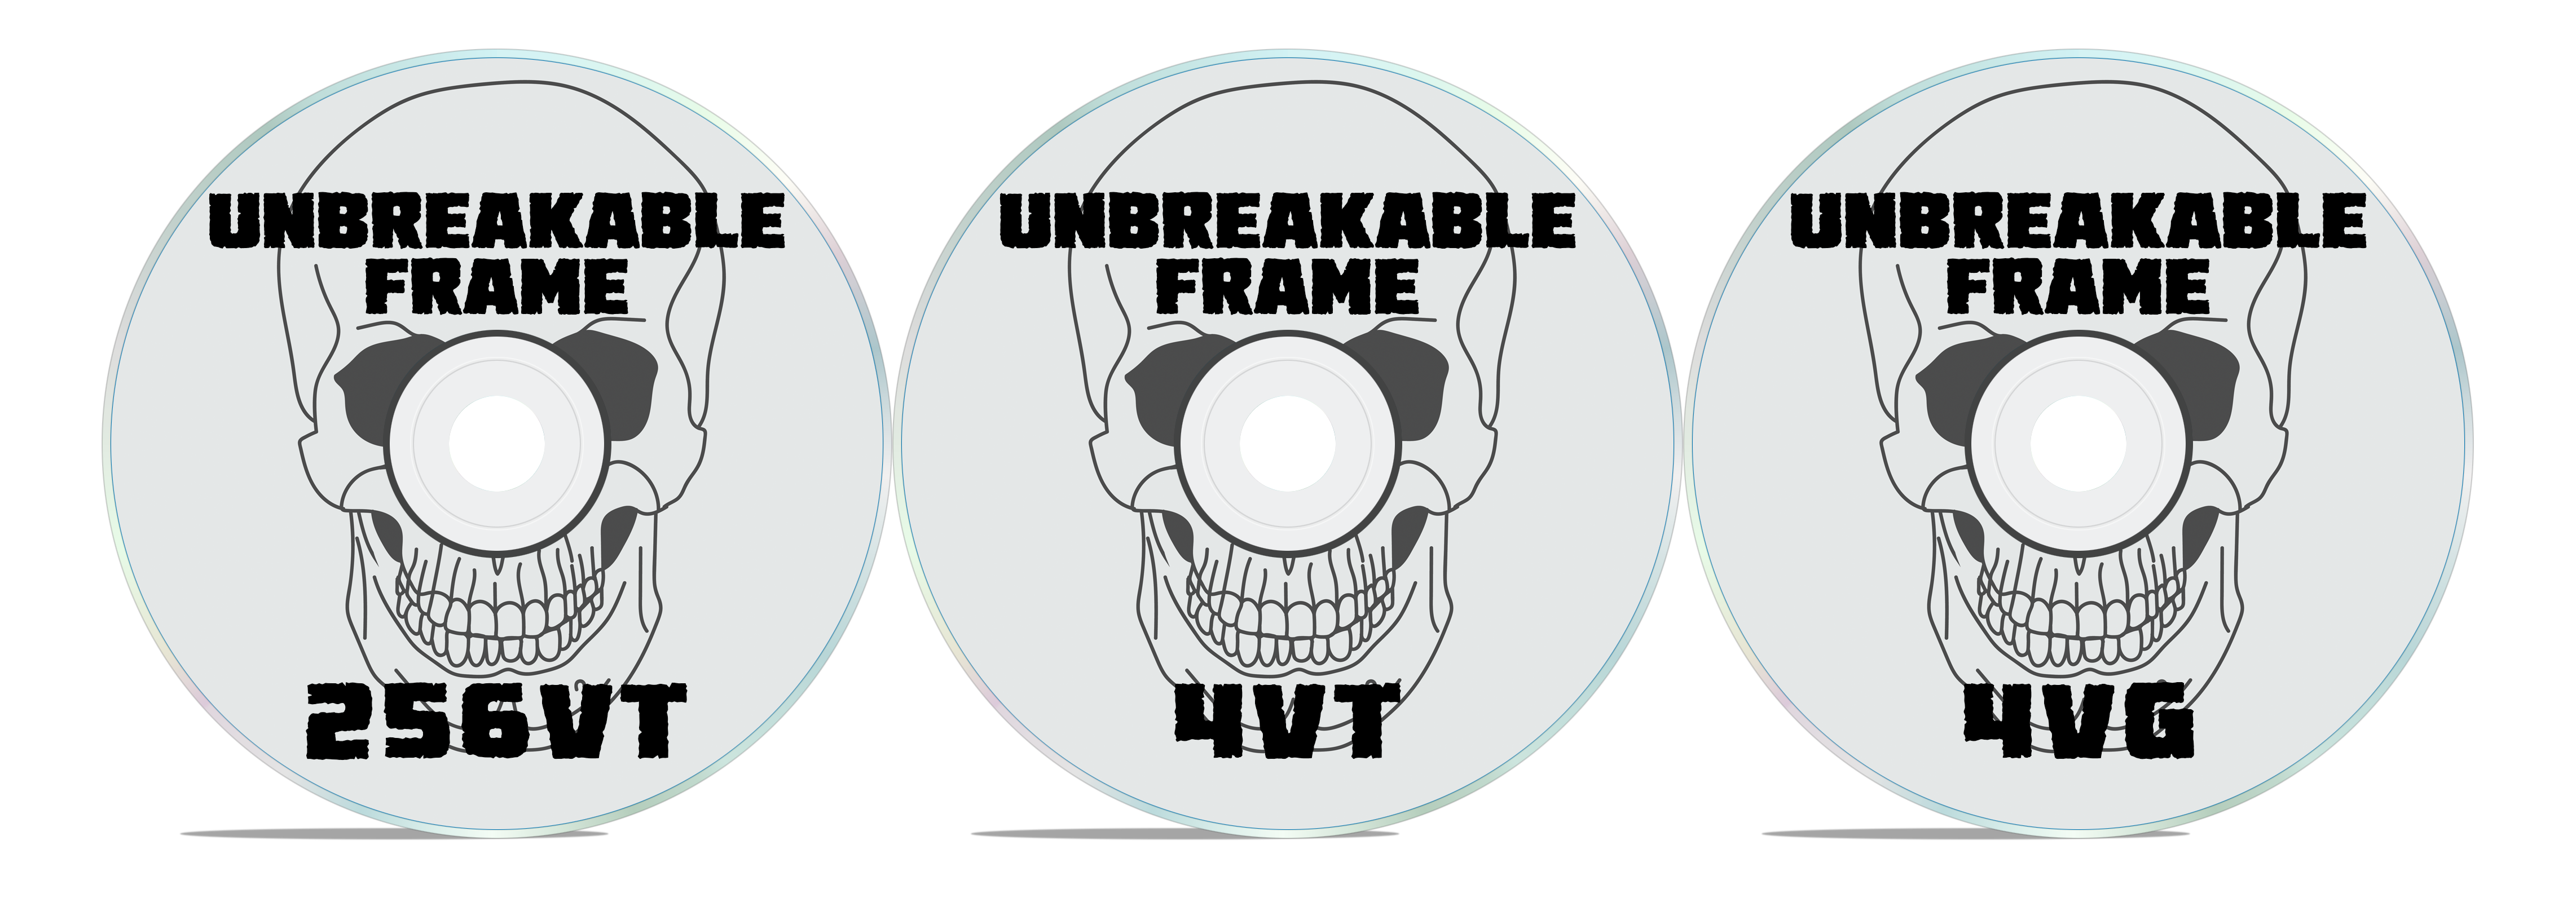 Unbreakable Frame